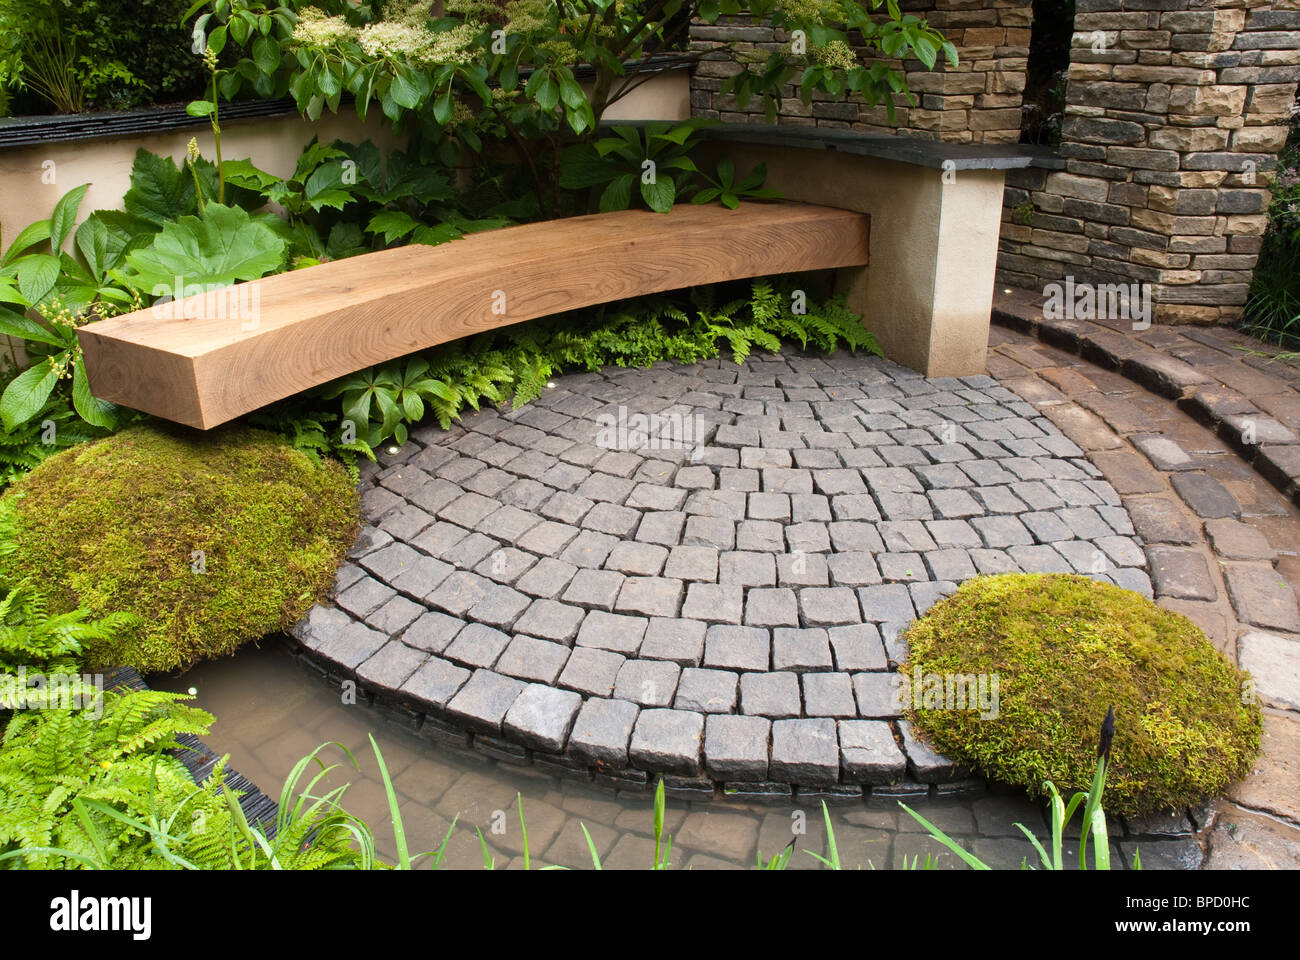 Swell Garden Bench And Stone Patio In Circular Curves With Moss Gmtry Best Dining Table And Chair Ideas Images Gmtryco